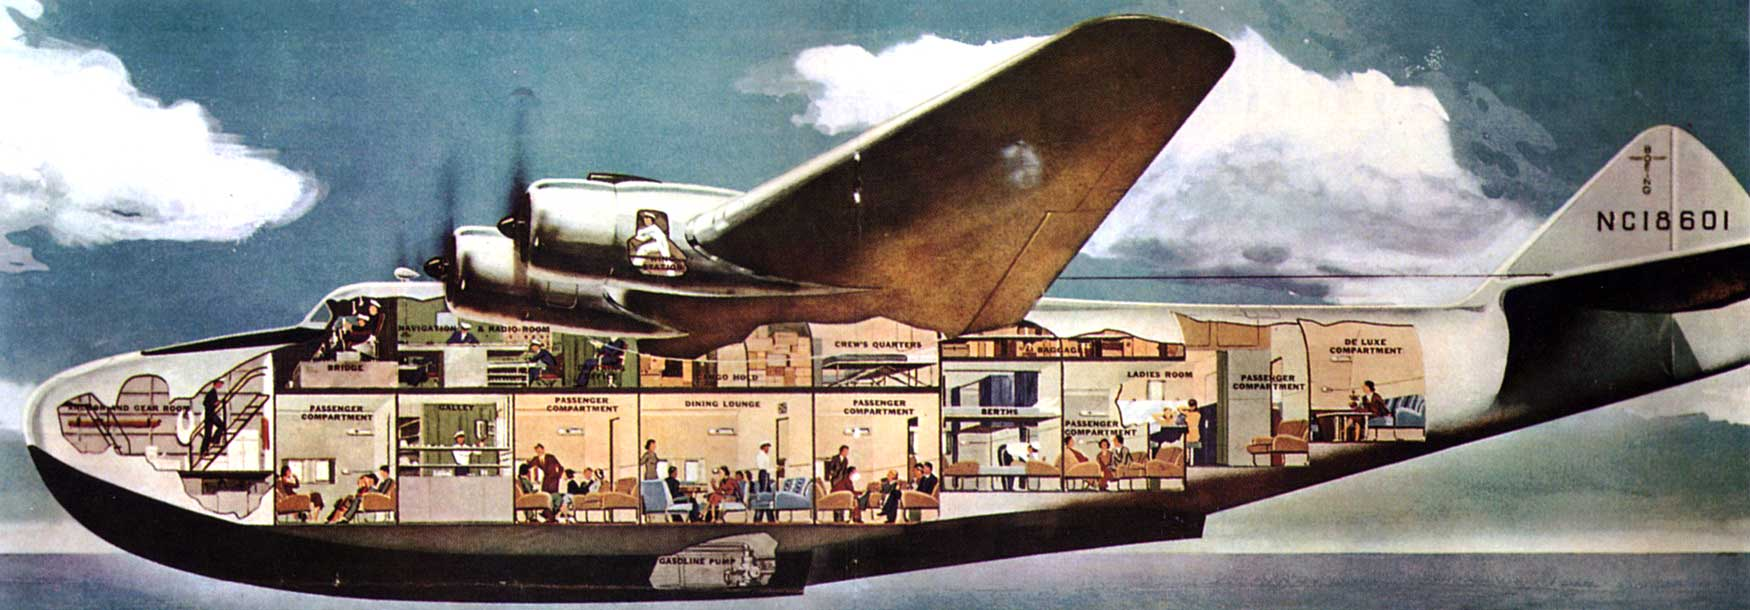 Pan Am Clipper | Ron's View